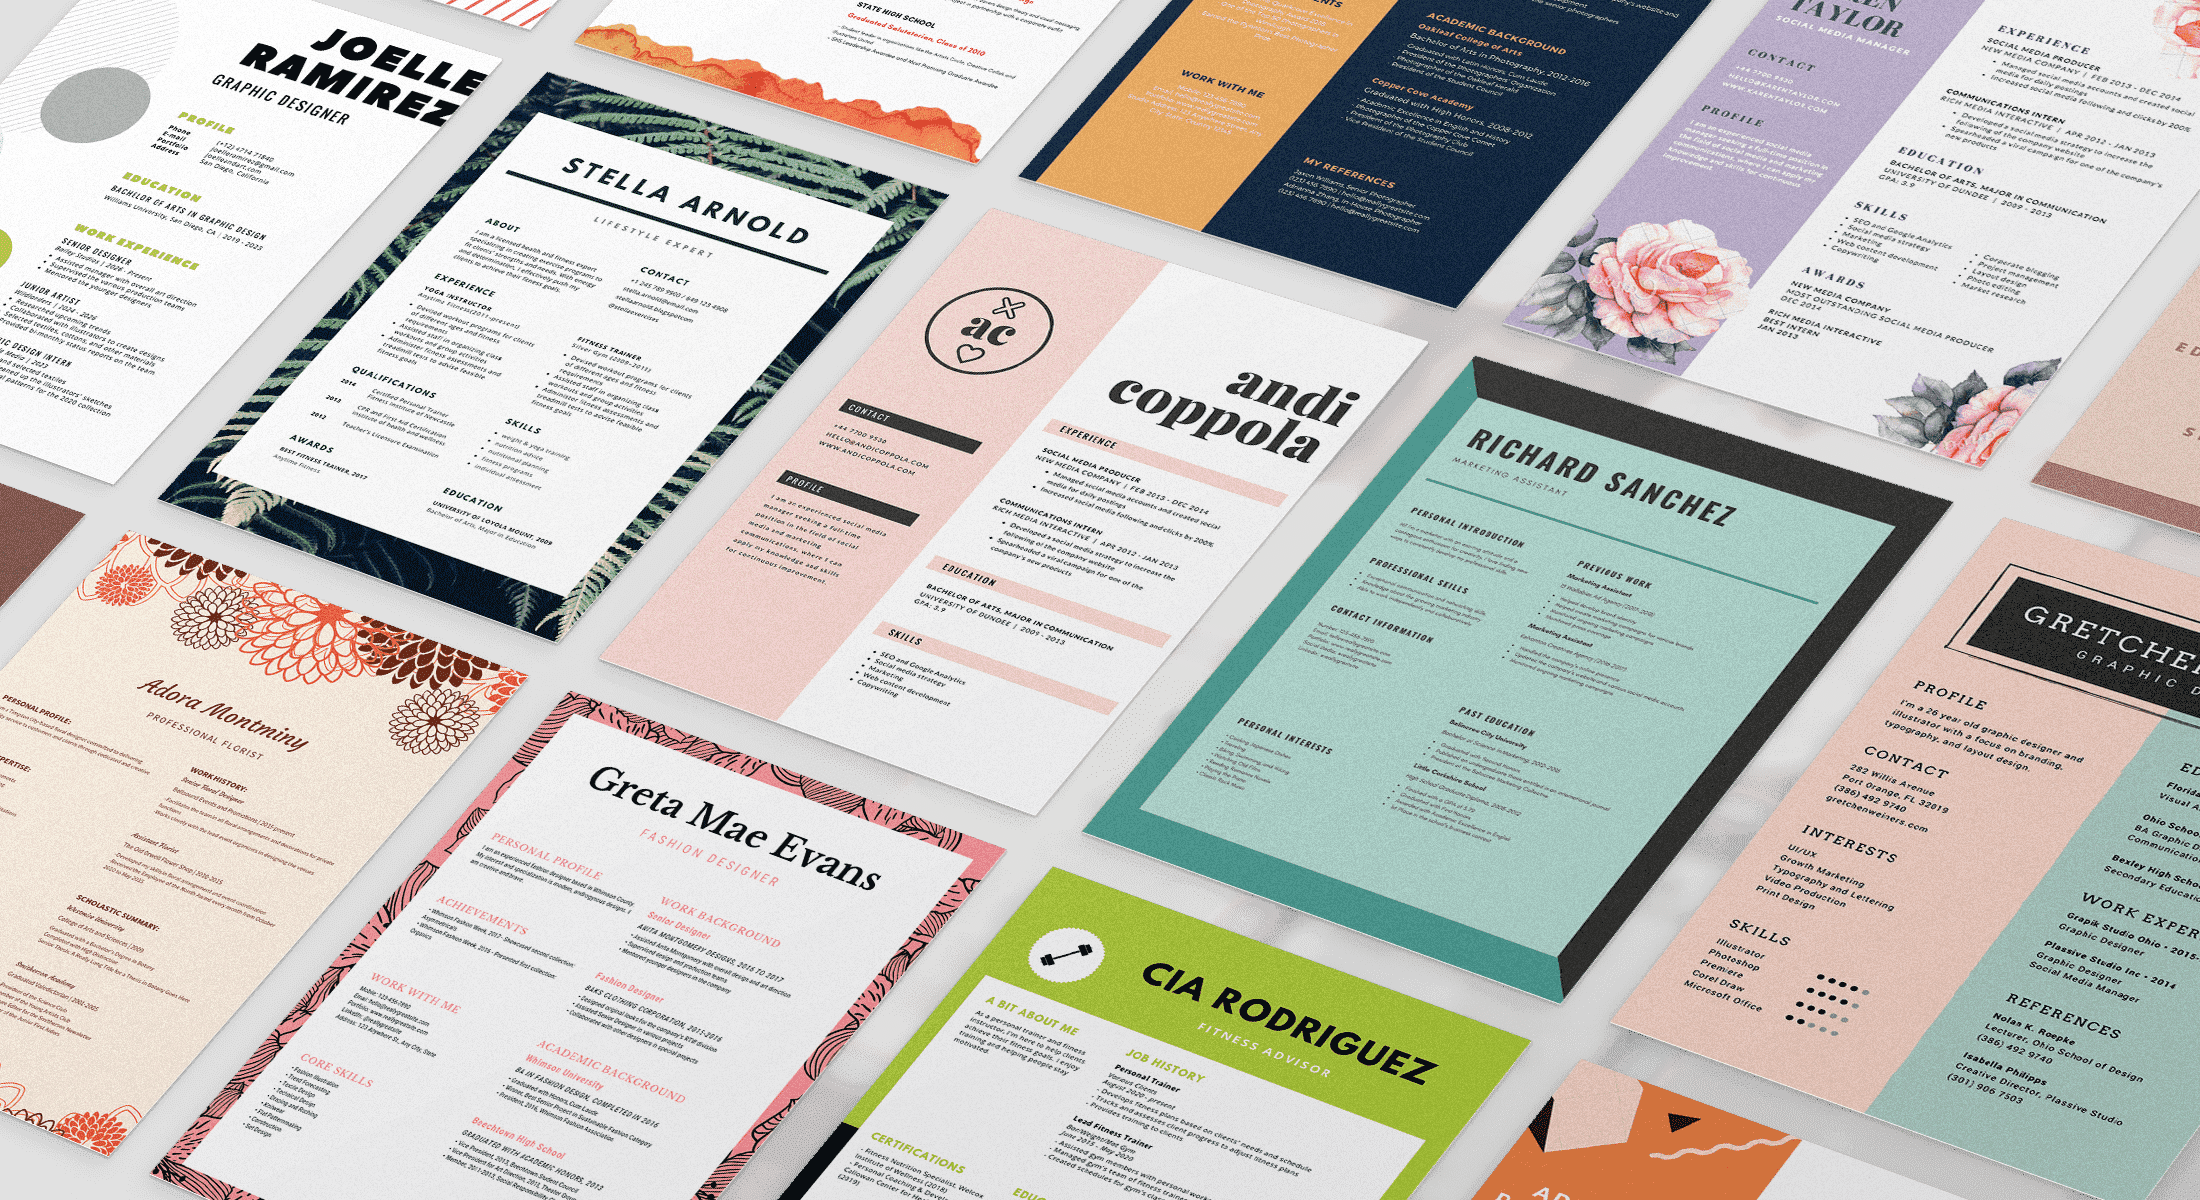 Simply answer a few intuitive questions and we'll ensure your experiences, skills, and attributes stand out from the crowd. Free Online Resume Builder Design A Custom Resume In Canva